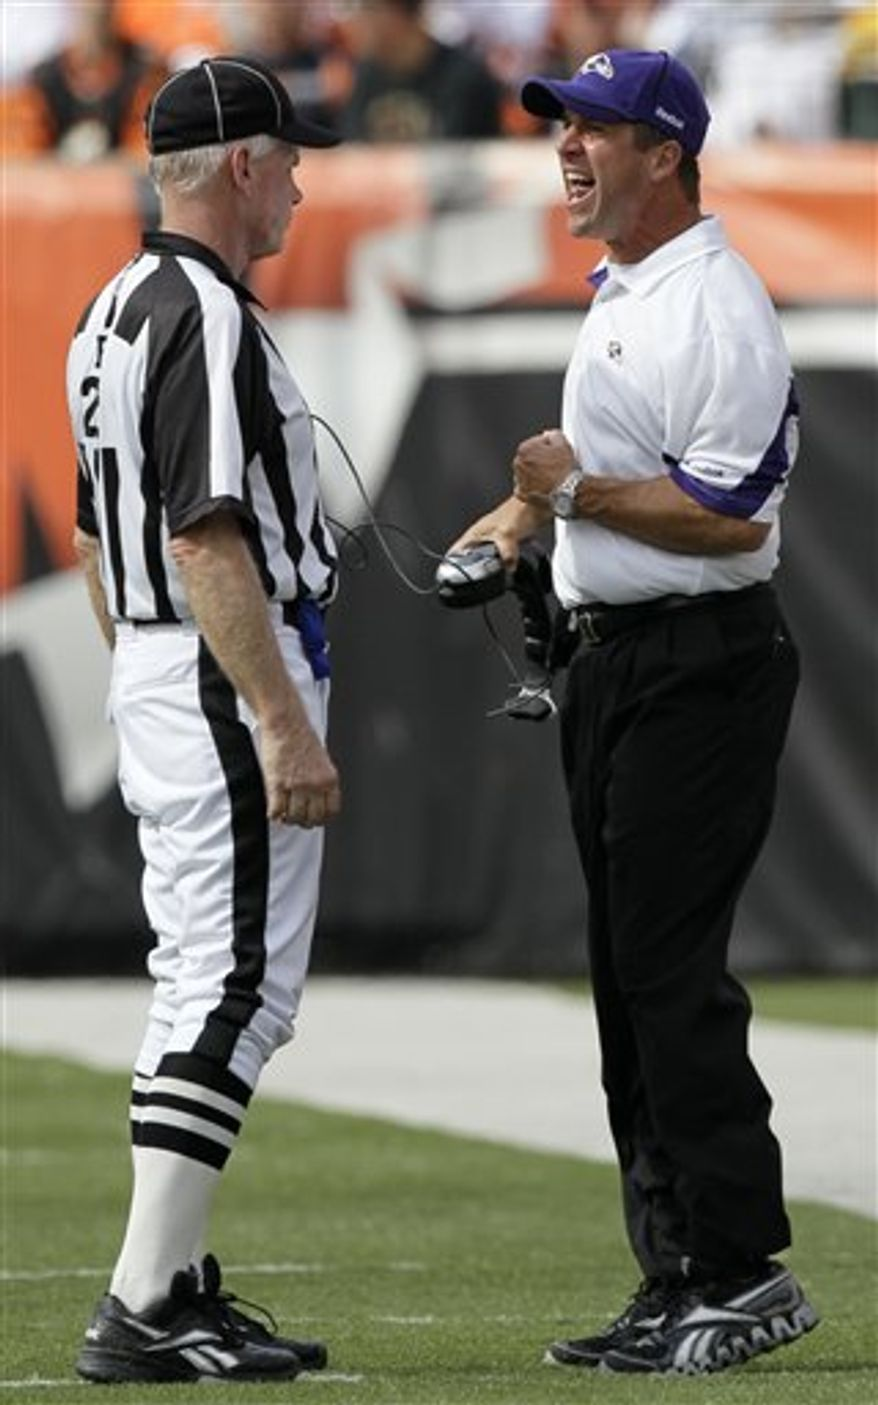 Baltimore Ravens coach John Harbaug complains to field judge Bob Waggoner during the second half of an NFL football game against the Cincinnati Bengals, Sunday, Sept. 19, 2010, in Cincinnati. (AP Photo/Ed Reinke)